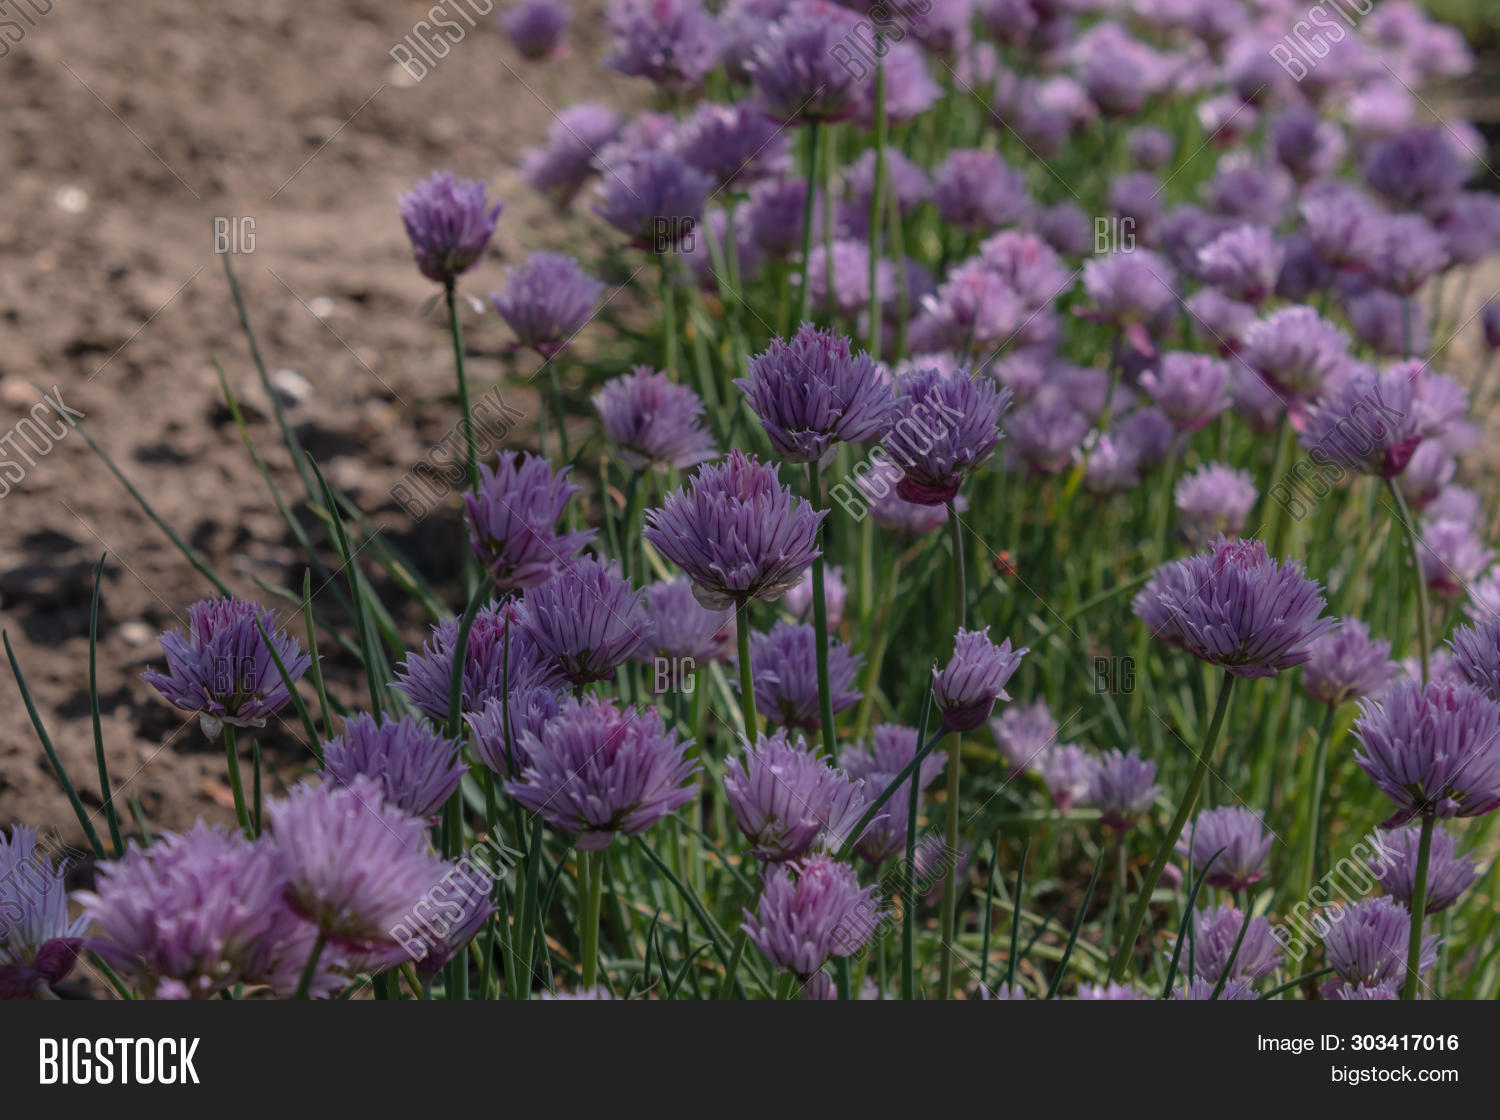 Luxuriant Blooming Flowers Chives Grow Abundantly In A Shaded Garden